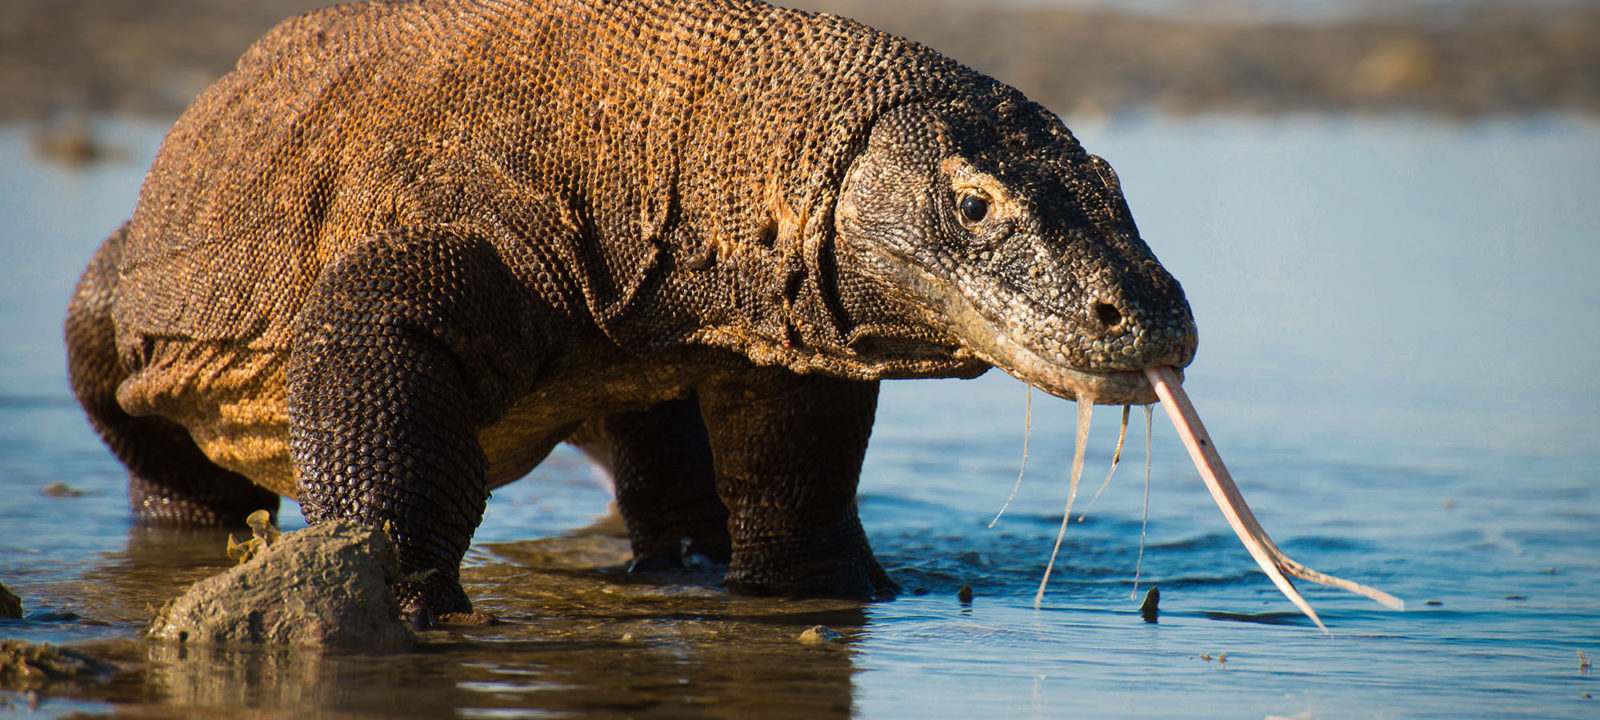 Komodo dragons are the largest lizards on earth and inhabit only a handful of islands in the Indonesian archipelago. They are equipped with an impressive armory of re-enforced scales, knife-like claws and strong tails, which the males use to fight for dominance & the rights to mate during the breeding season.